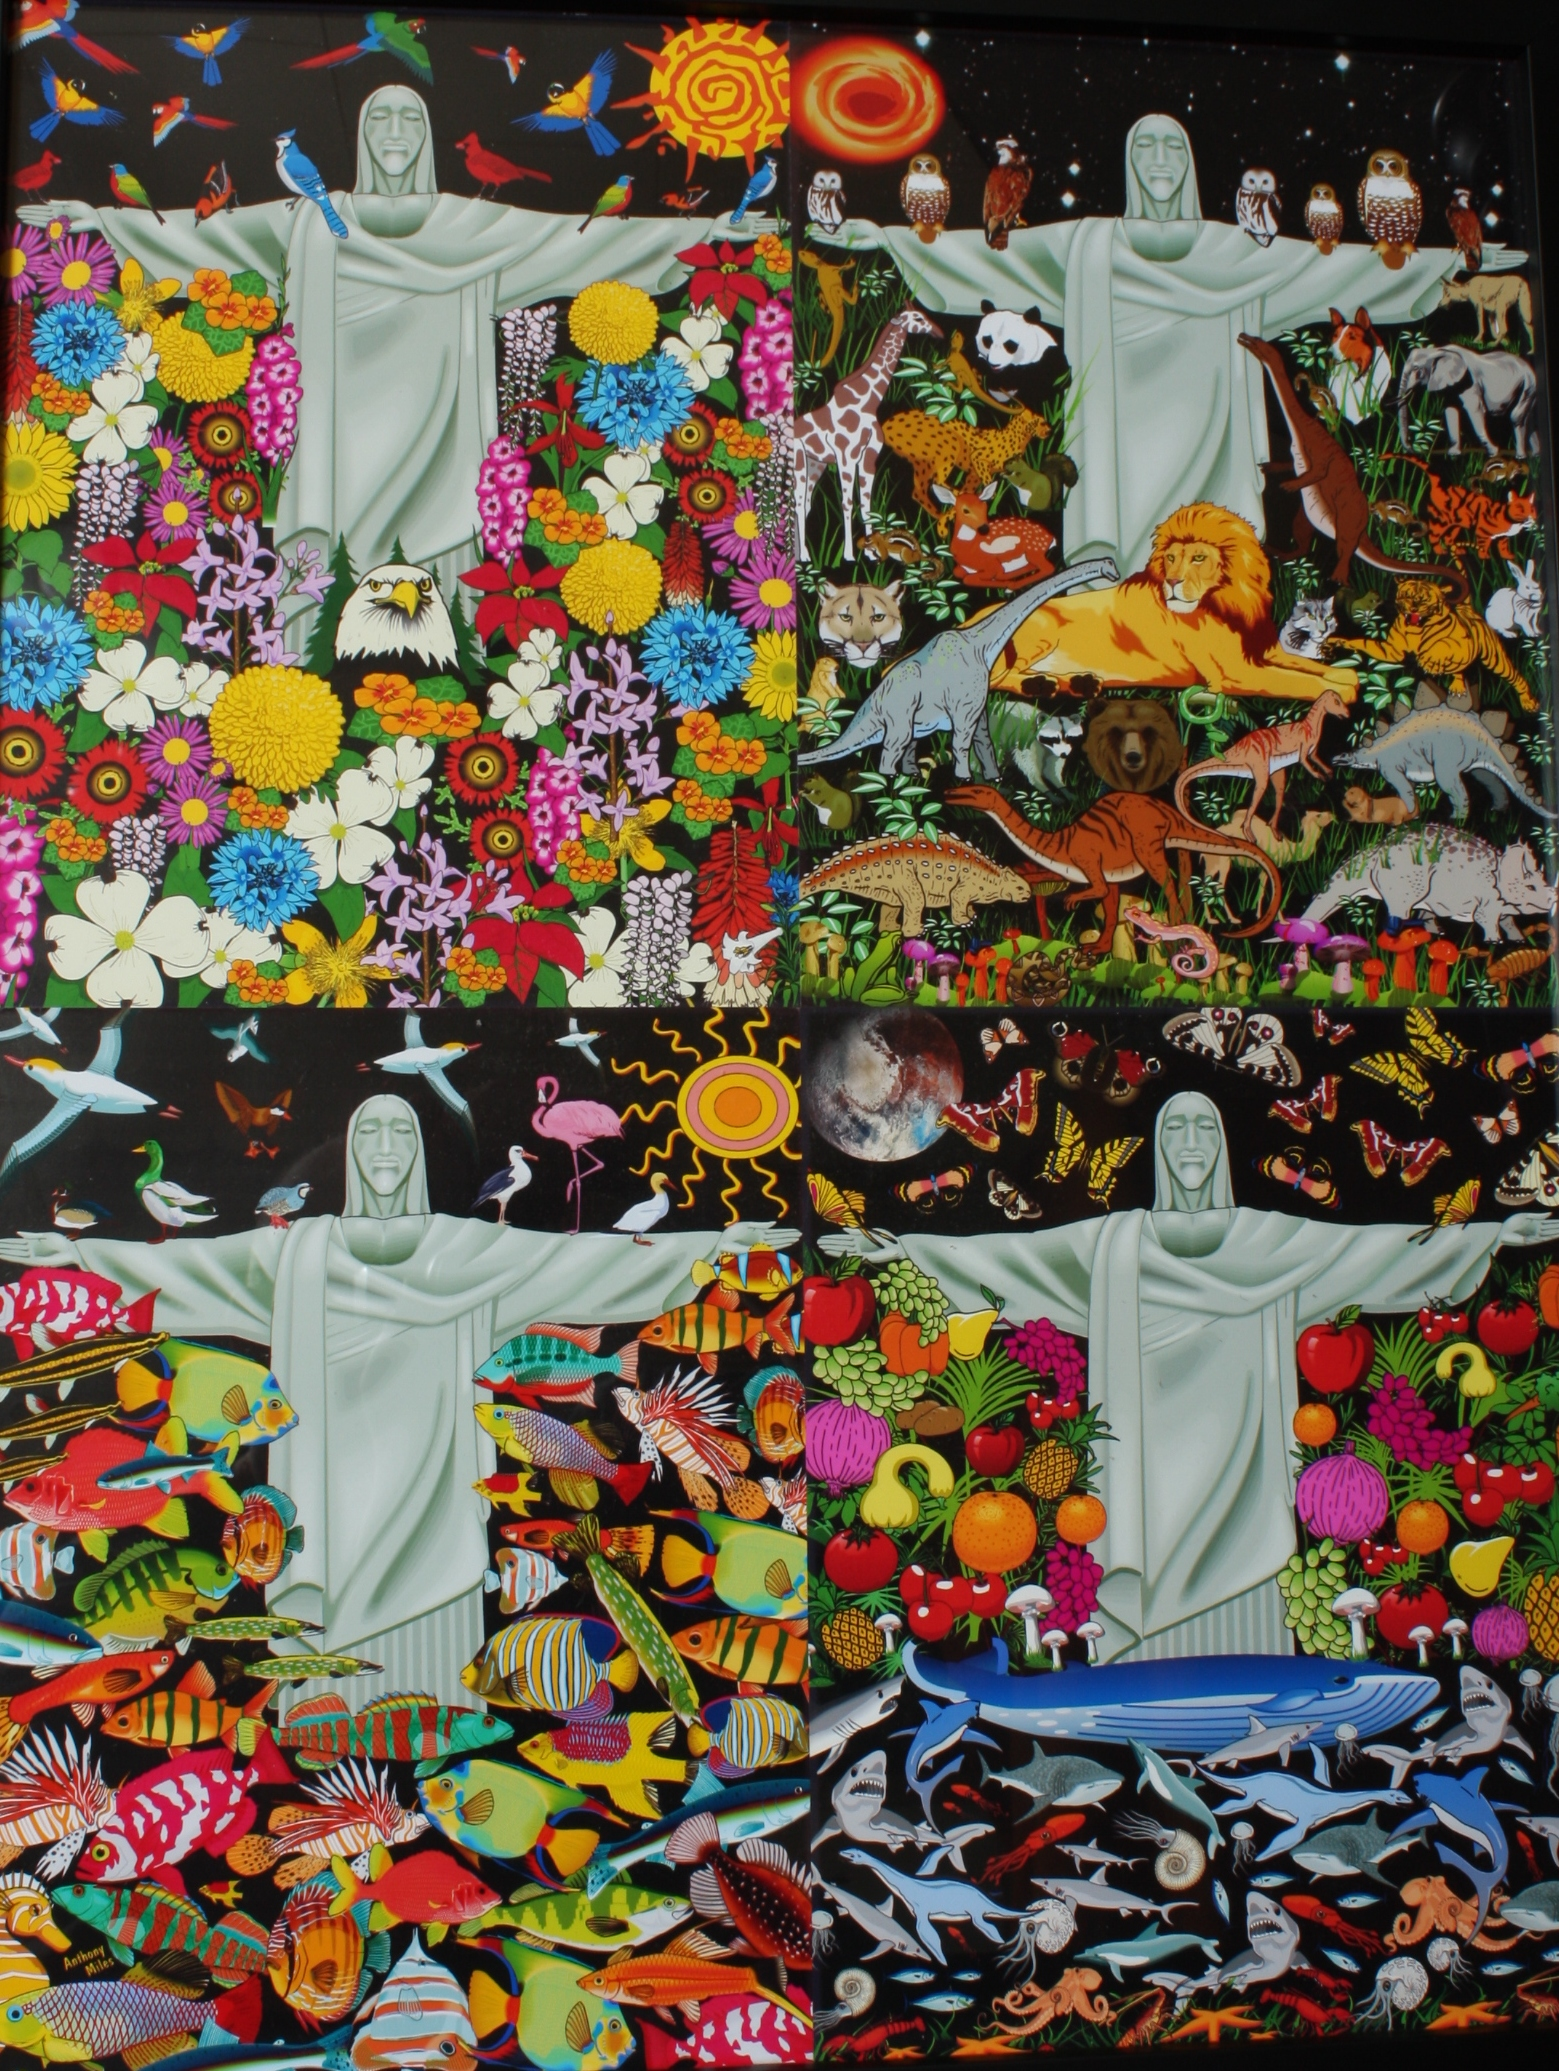 Creative Creator artwork by Anthony Miles - art listed for sale on Artplode